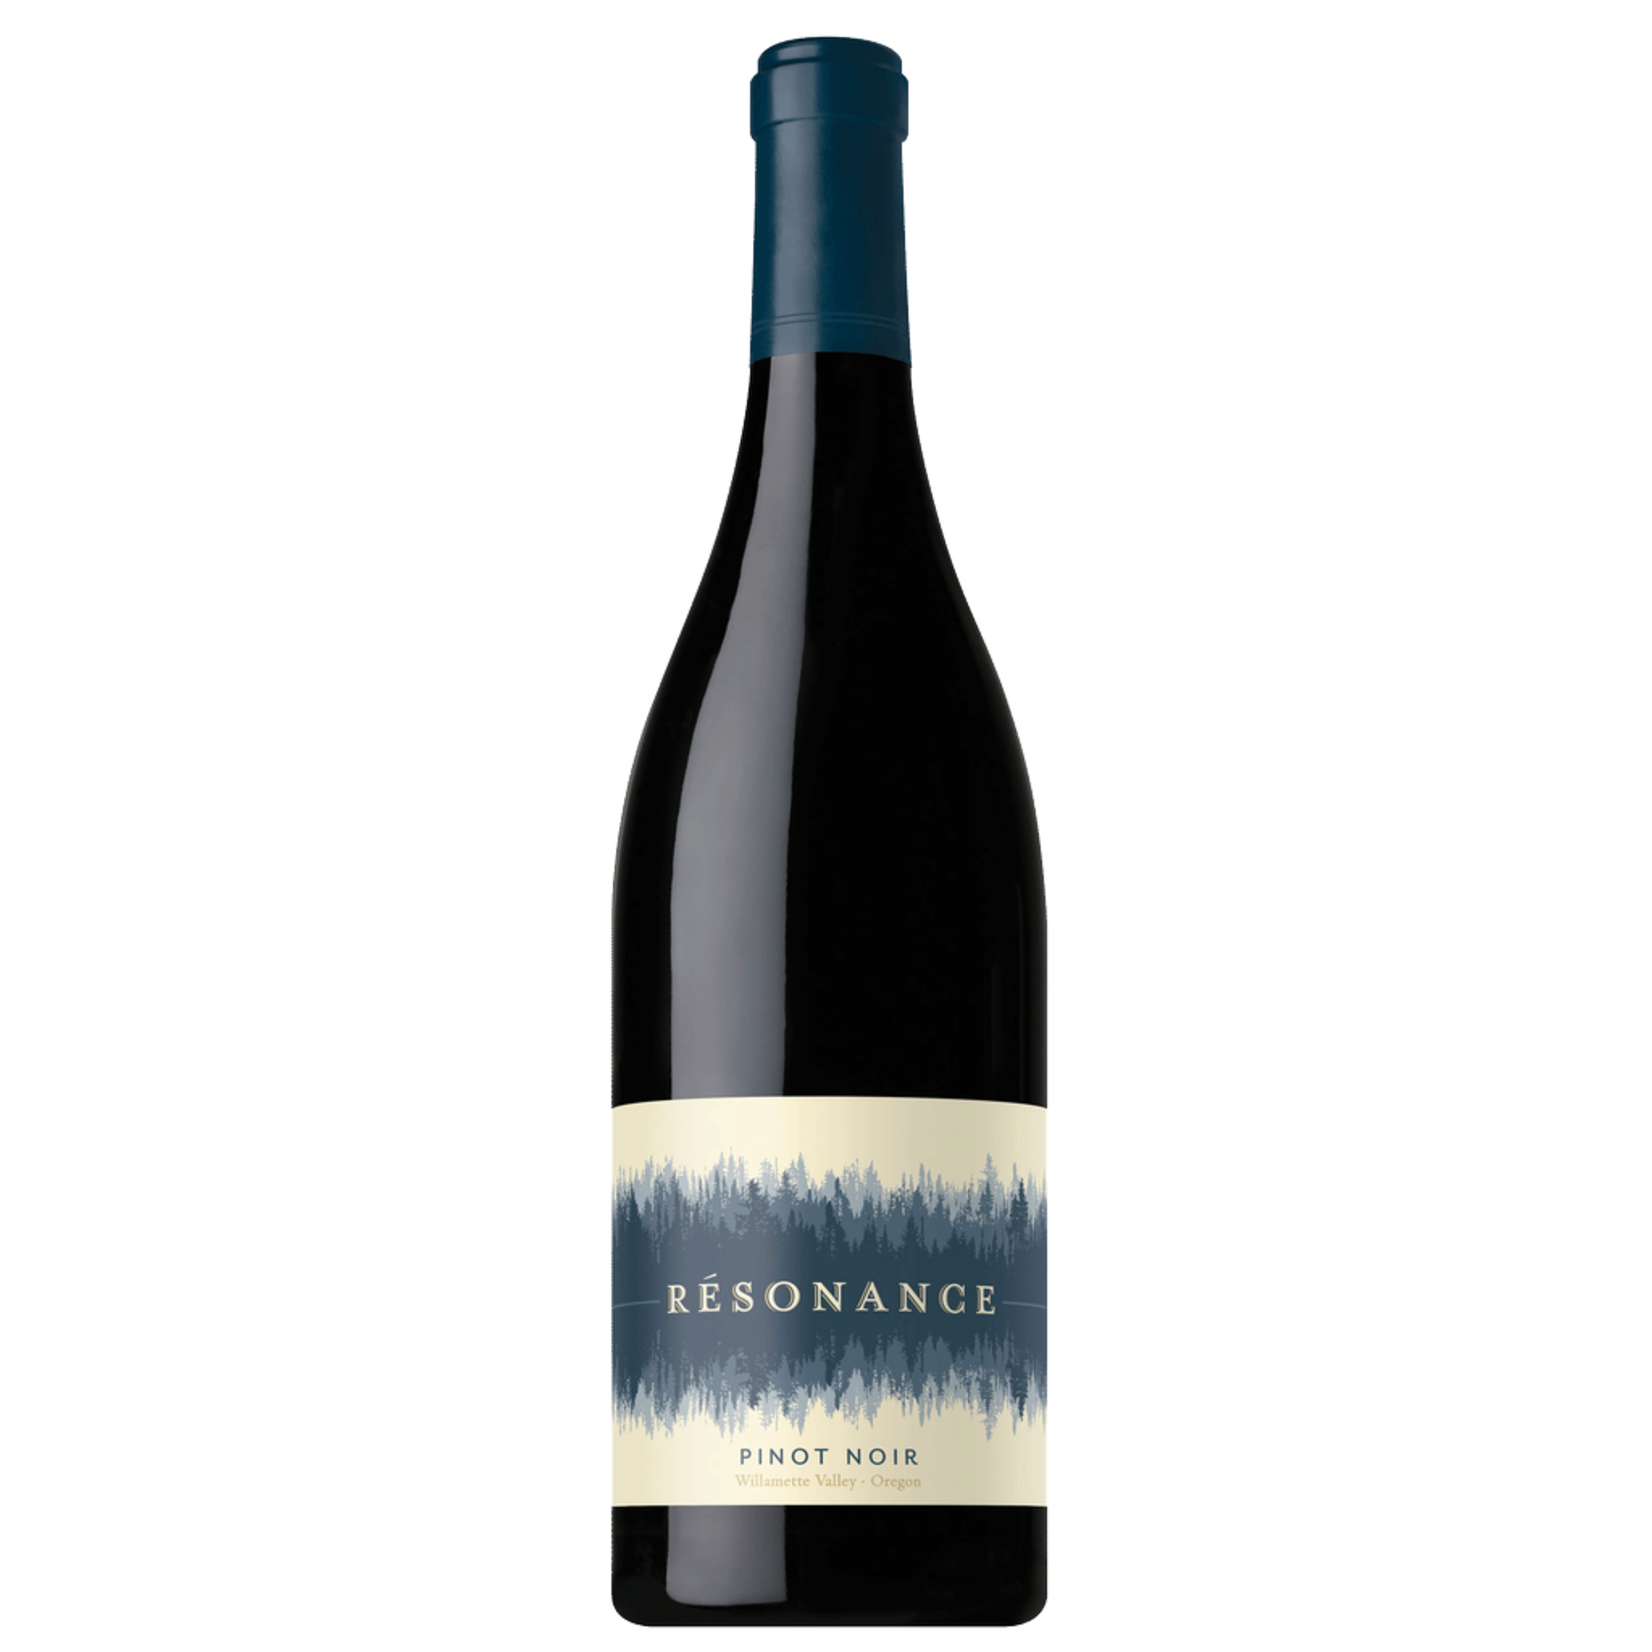 Wine Resonance Pinot Noir Willamette Valley 2018